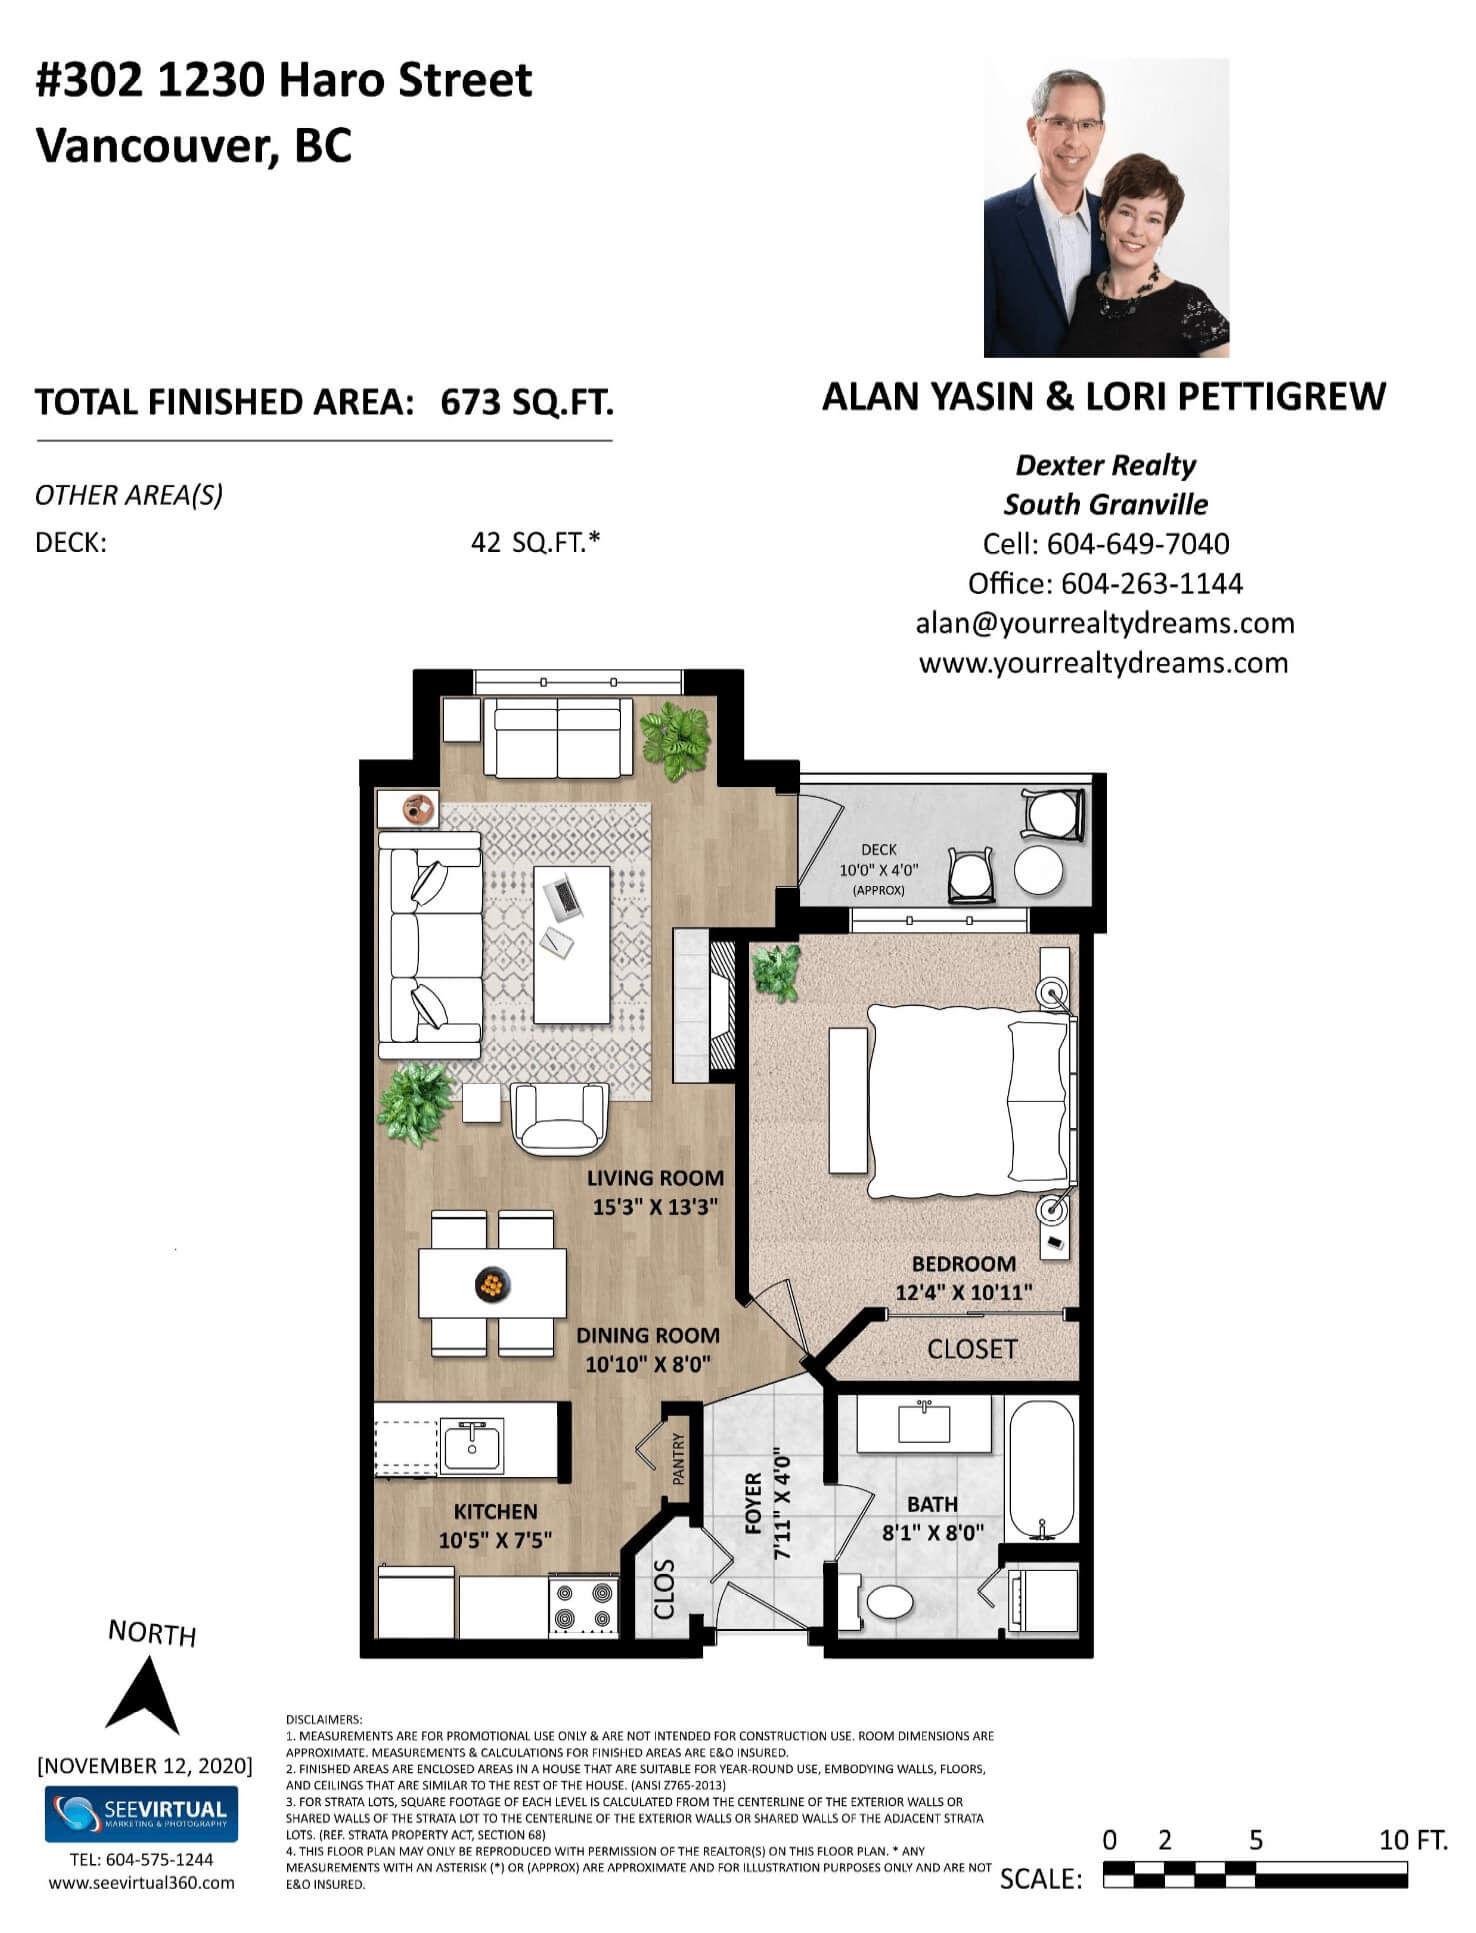 Floorplan - Condo in the West End of Vancouver BC